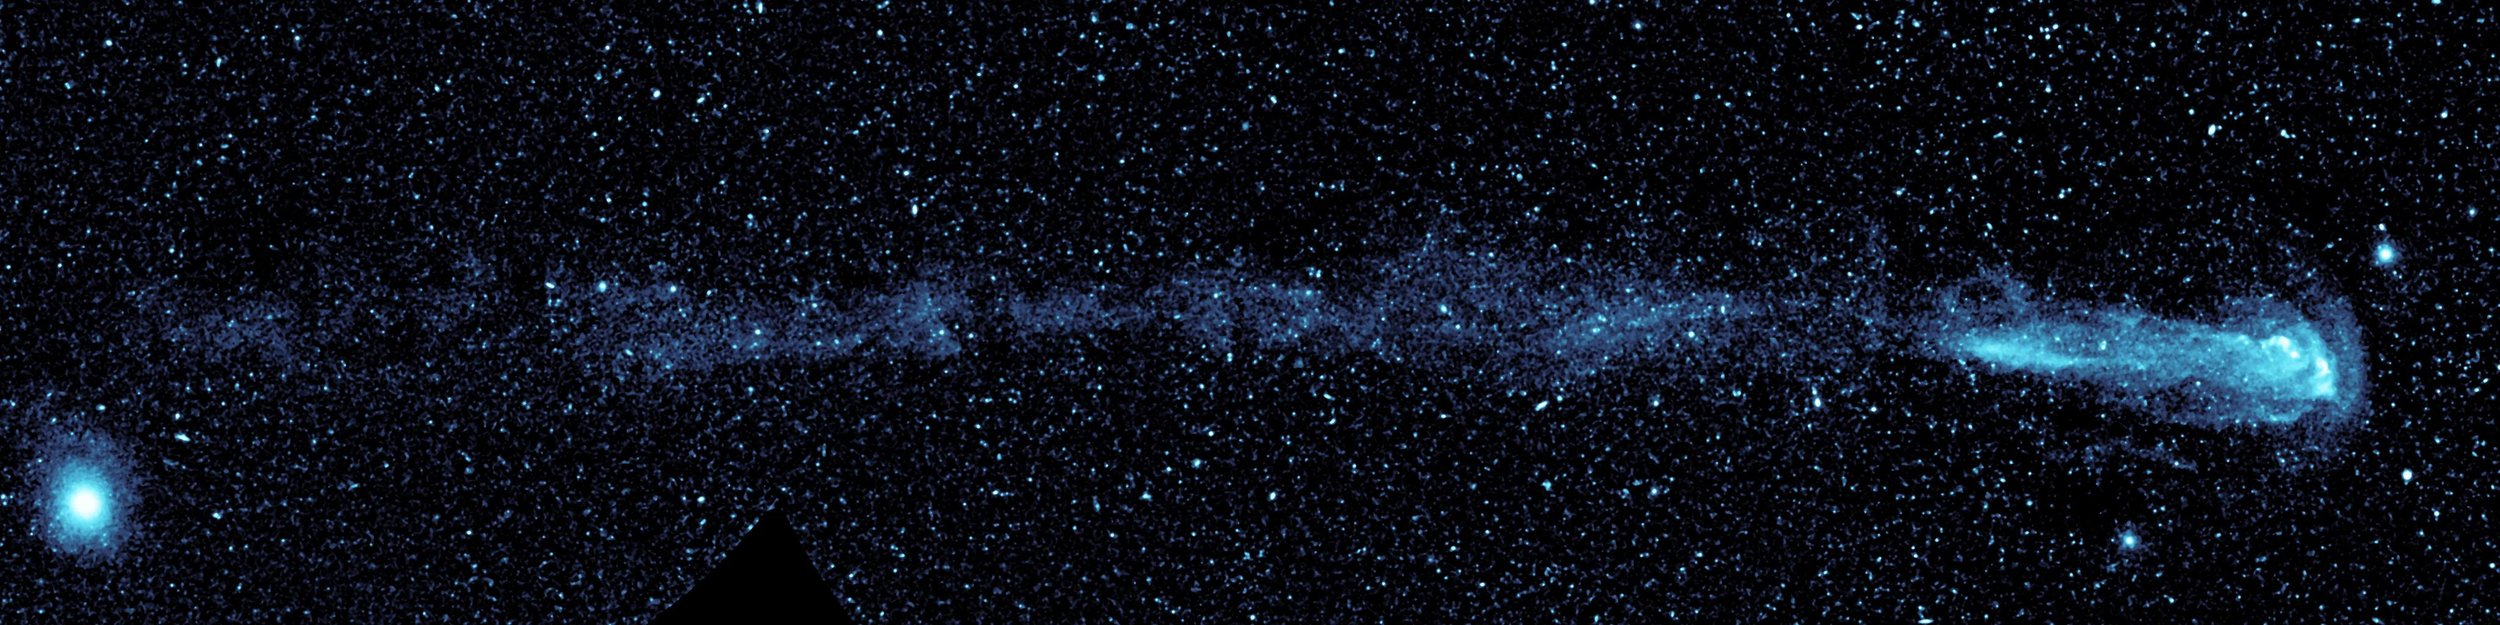 "New ultraviolet images from NASA's Galaxy Evolution Explorer shows a speeding star that is leaving an enormous trail of ""seeds"" for new solar systems. The star, named Mira (pronounced my-rah) after the latin word for ""wonderful,"" is shedding material that will be recycled into new stars, planets and possibly even life as it hurls through our galaxy. Mira, also known as Mira A, is not alone in its travels through space. It has a distant companion star called Mira B that is thought to be the burnt-out, dead core of a star, called a white dwarf. Mira A and B circle around each other slowly, making one orbit about every 500 years. Astronomers believe that Mira B has no effect on Mira's tail. Image credit: NASA/JPL-Caltech"